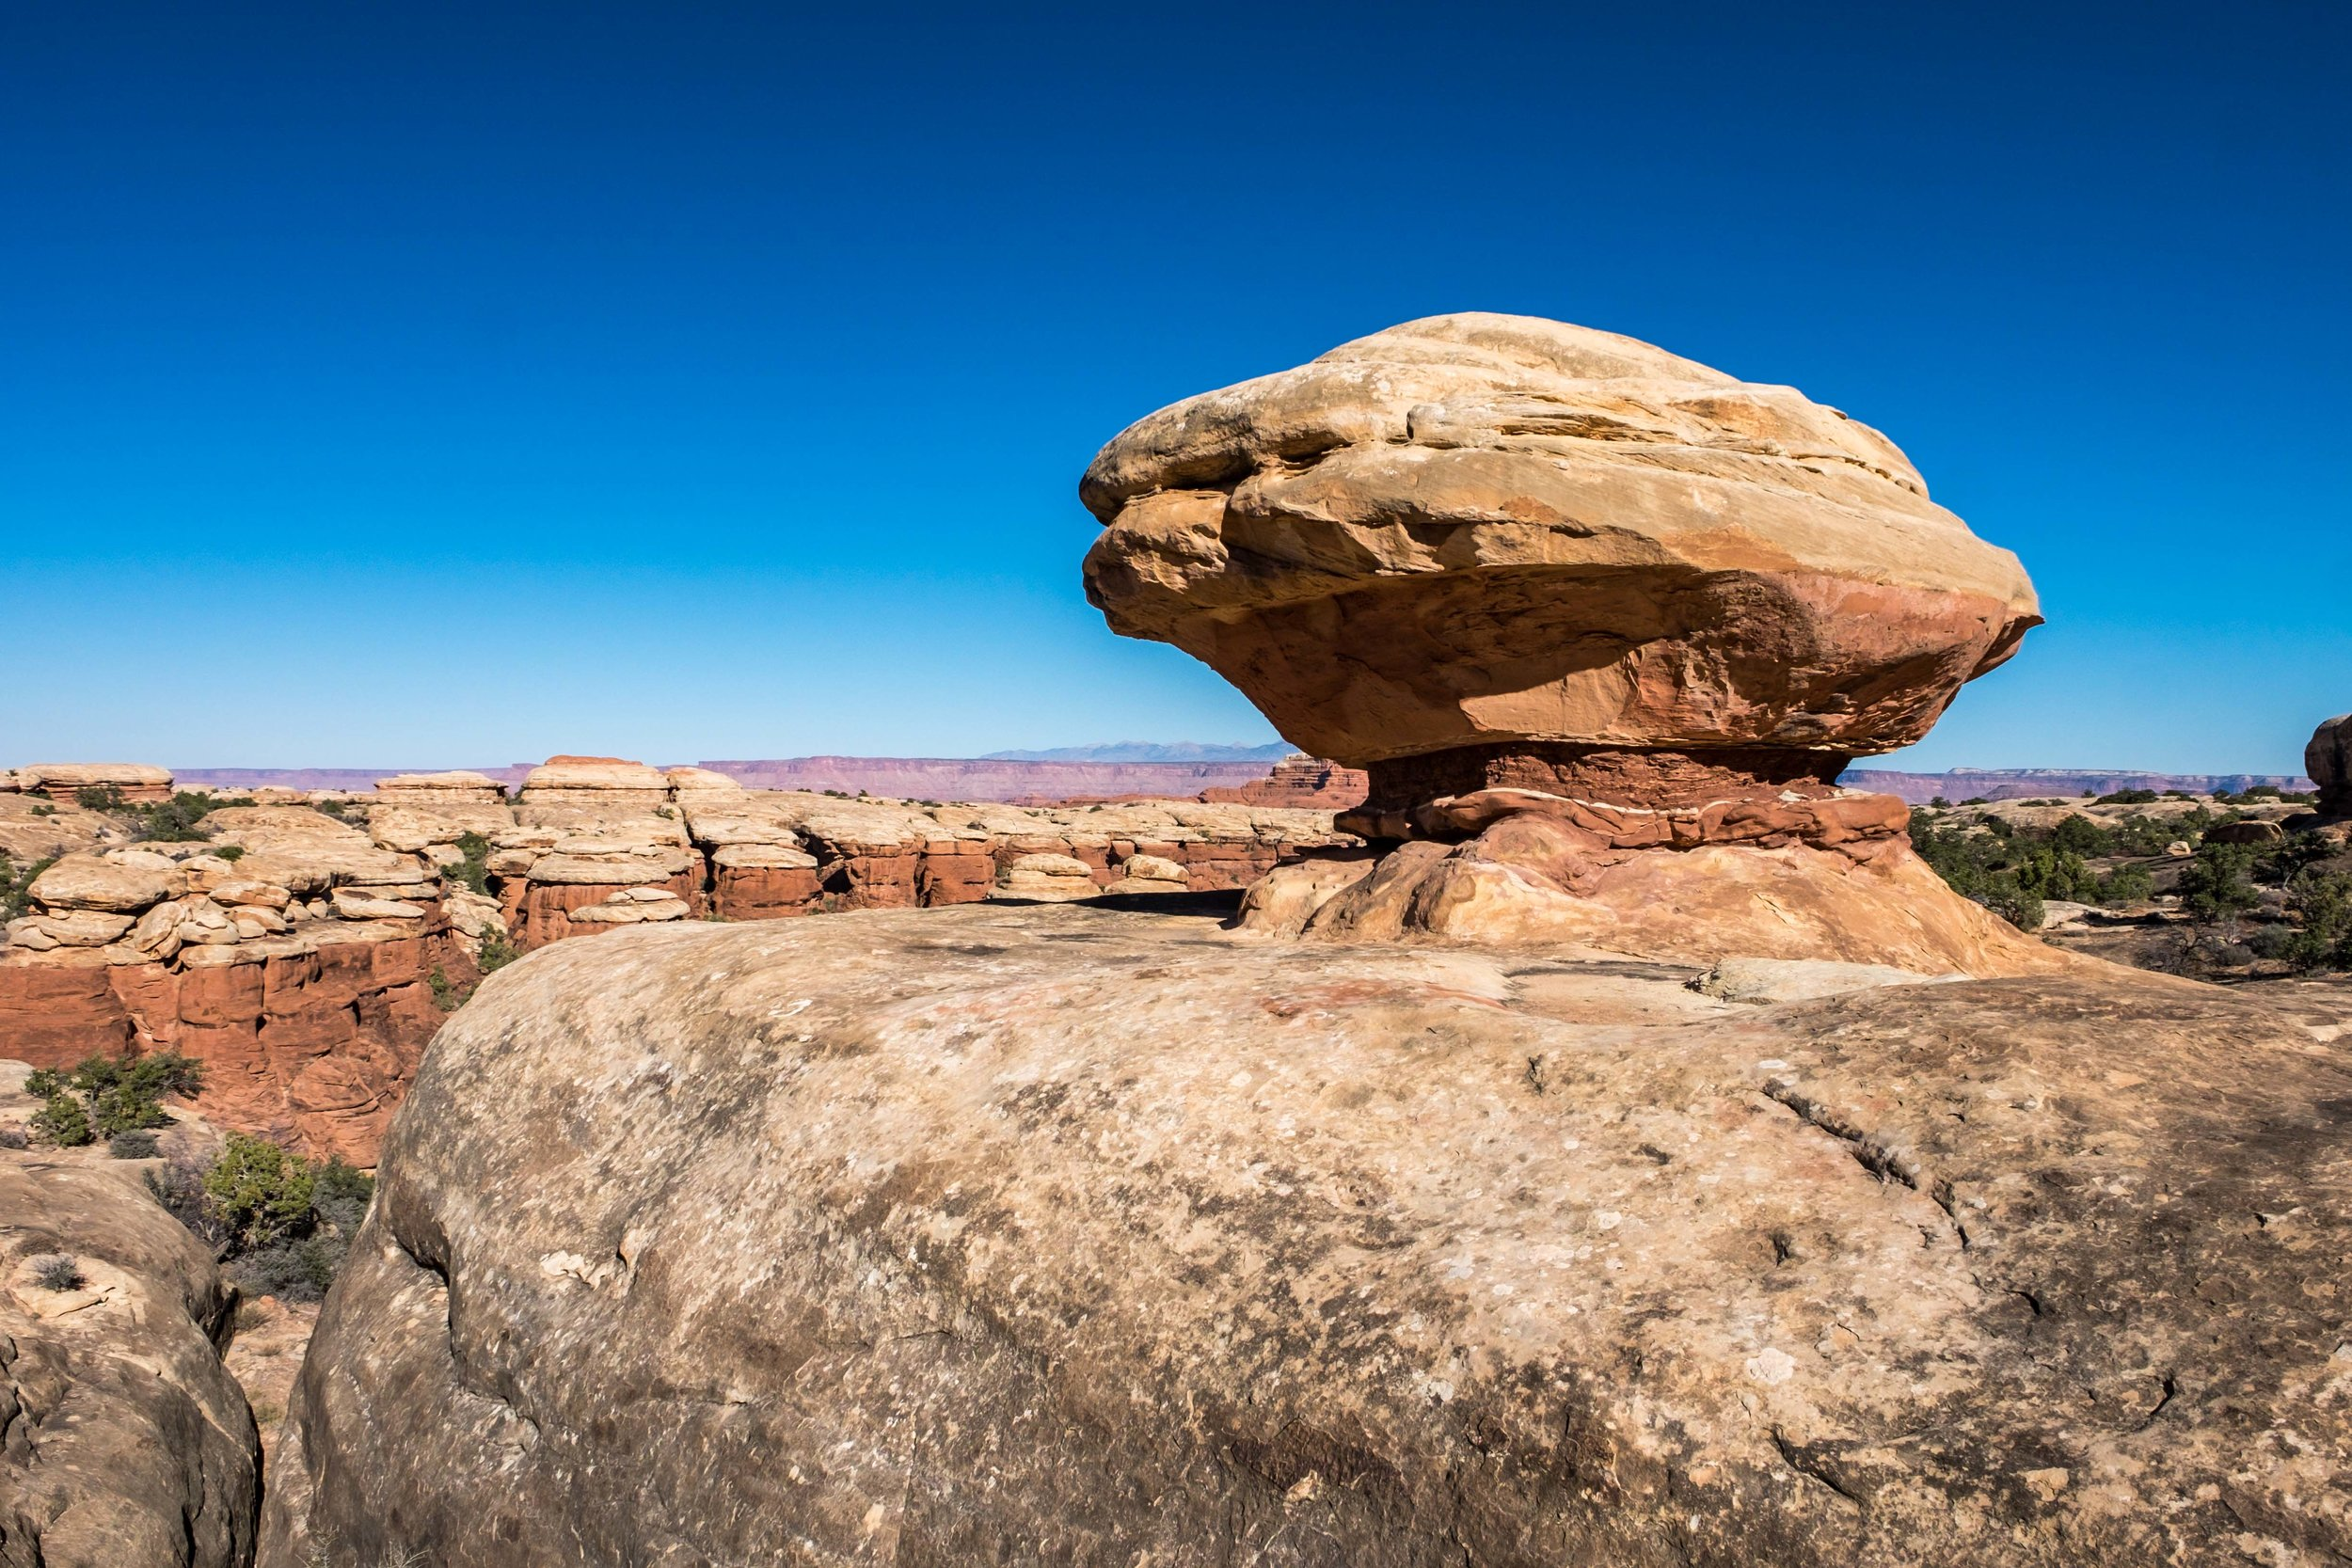 Quite the strange balanced rock.